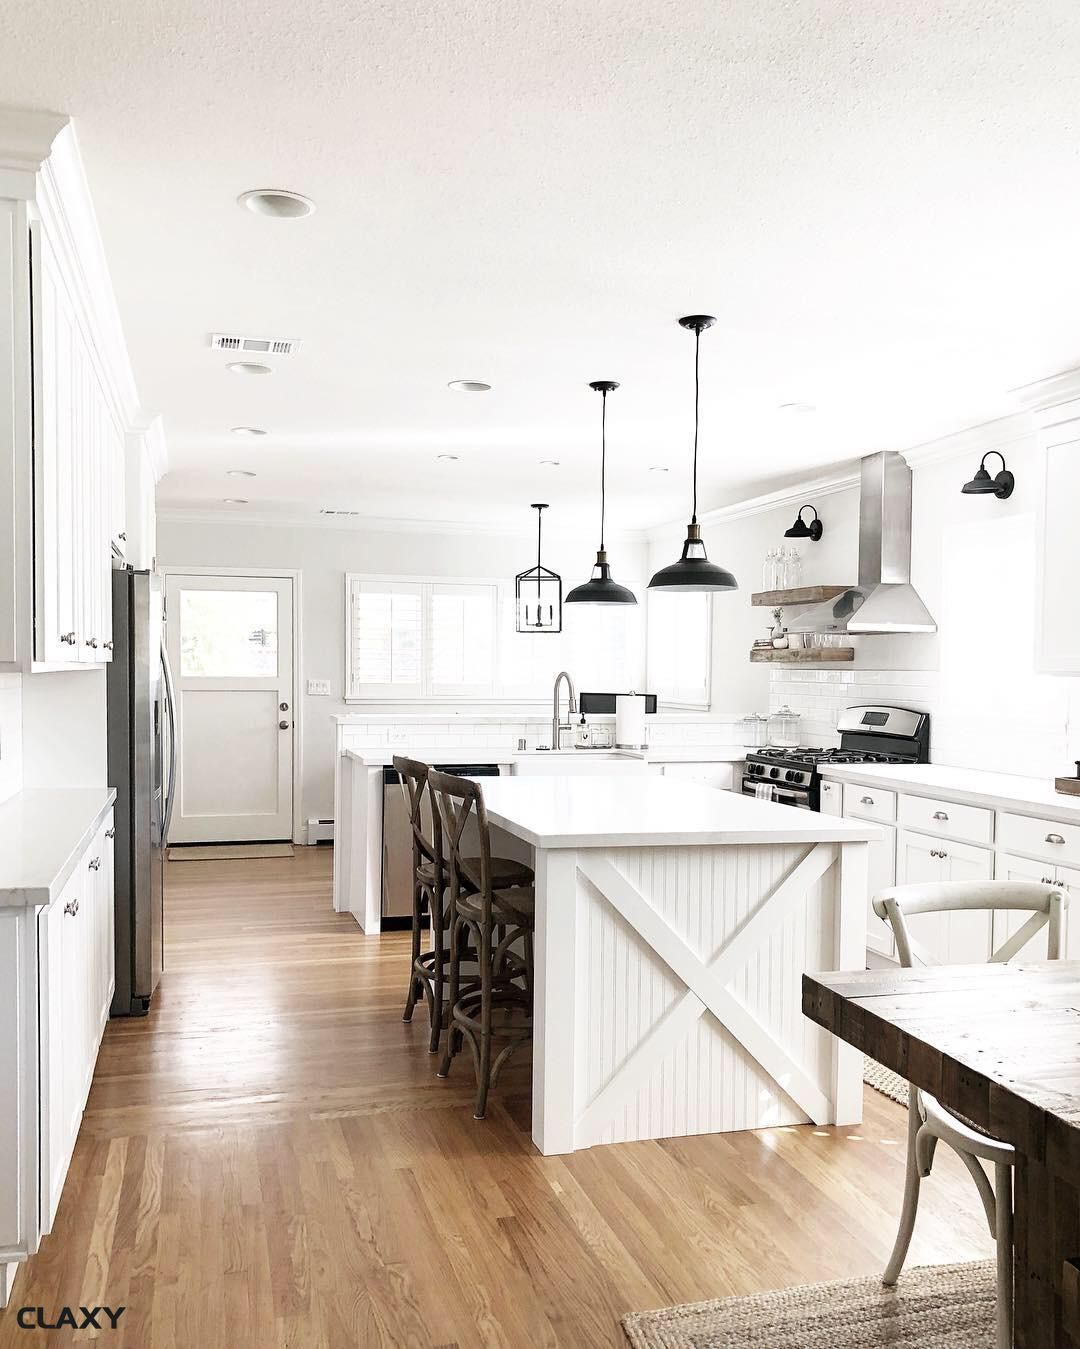 10 Designs Perfect for Your Small Kitchen | Modern ... on Rustic:yucvisfte_S= Farmhouse Kitchen Ideas  id=14153